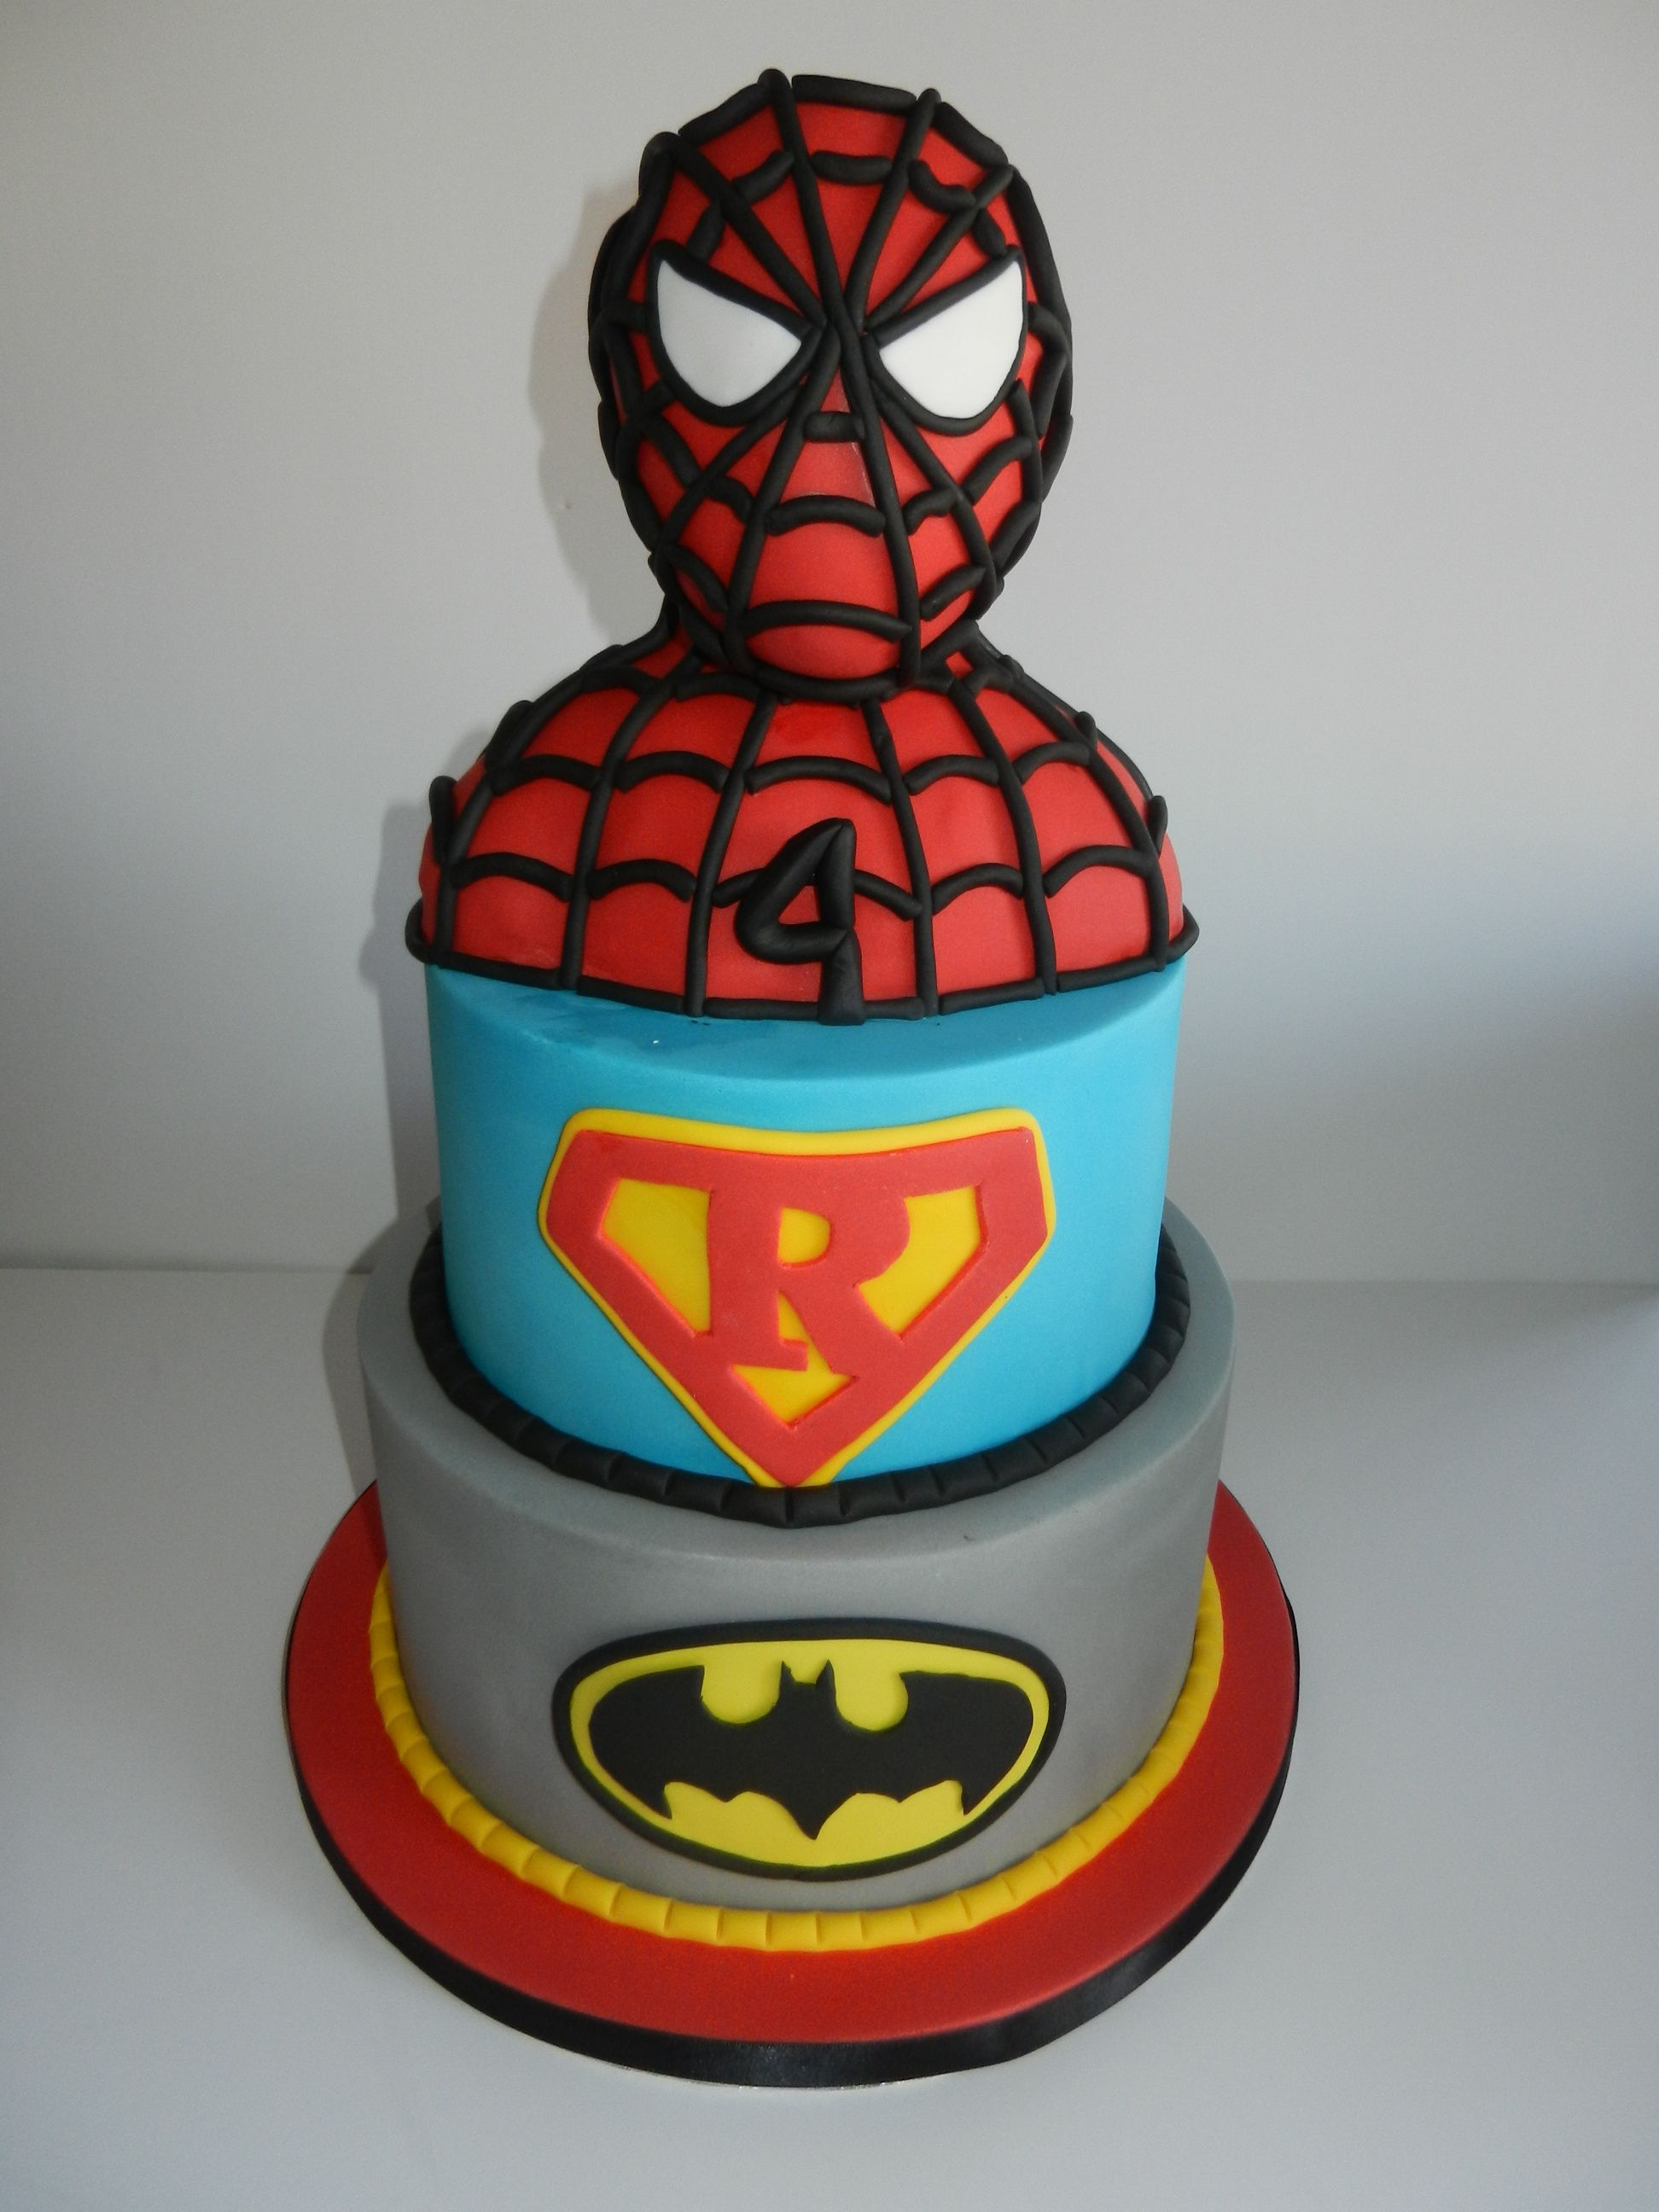 This Super Hero Cake Was For A Super 4 Year Old Birthday